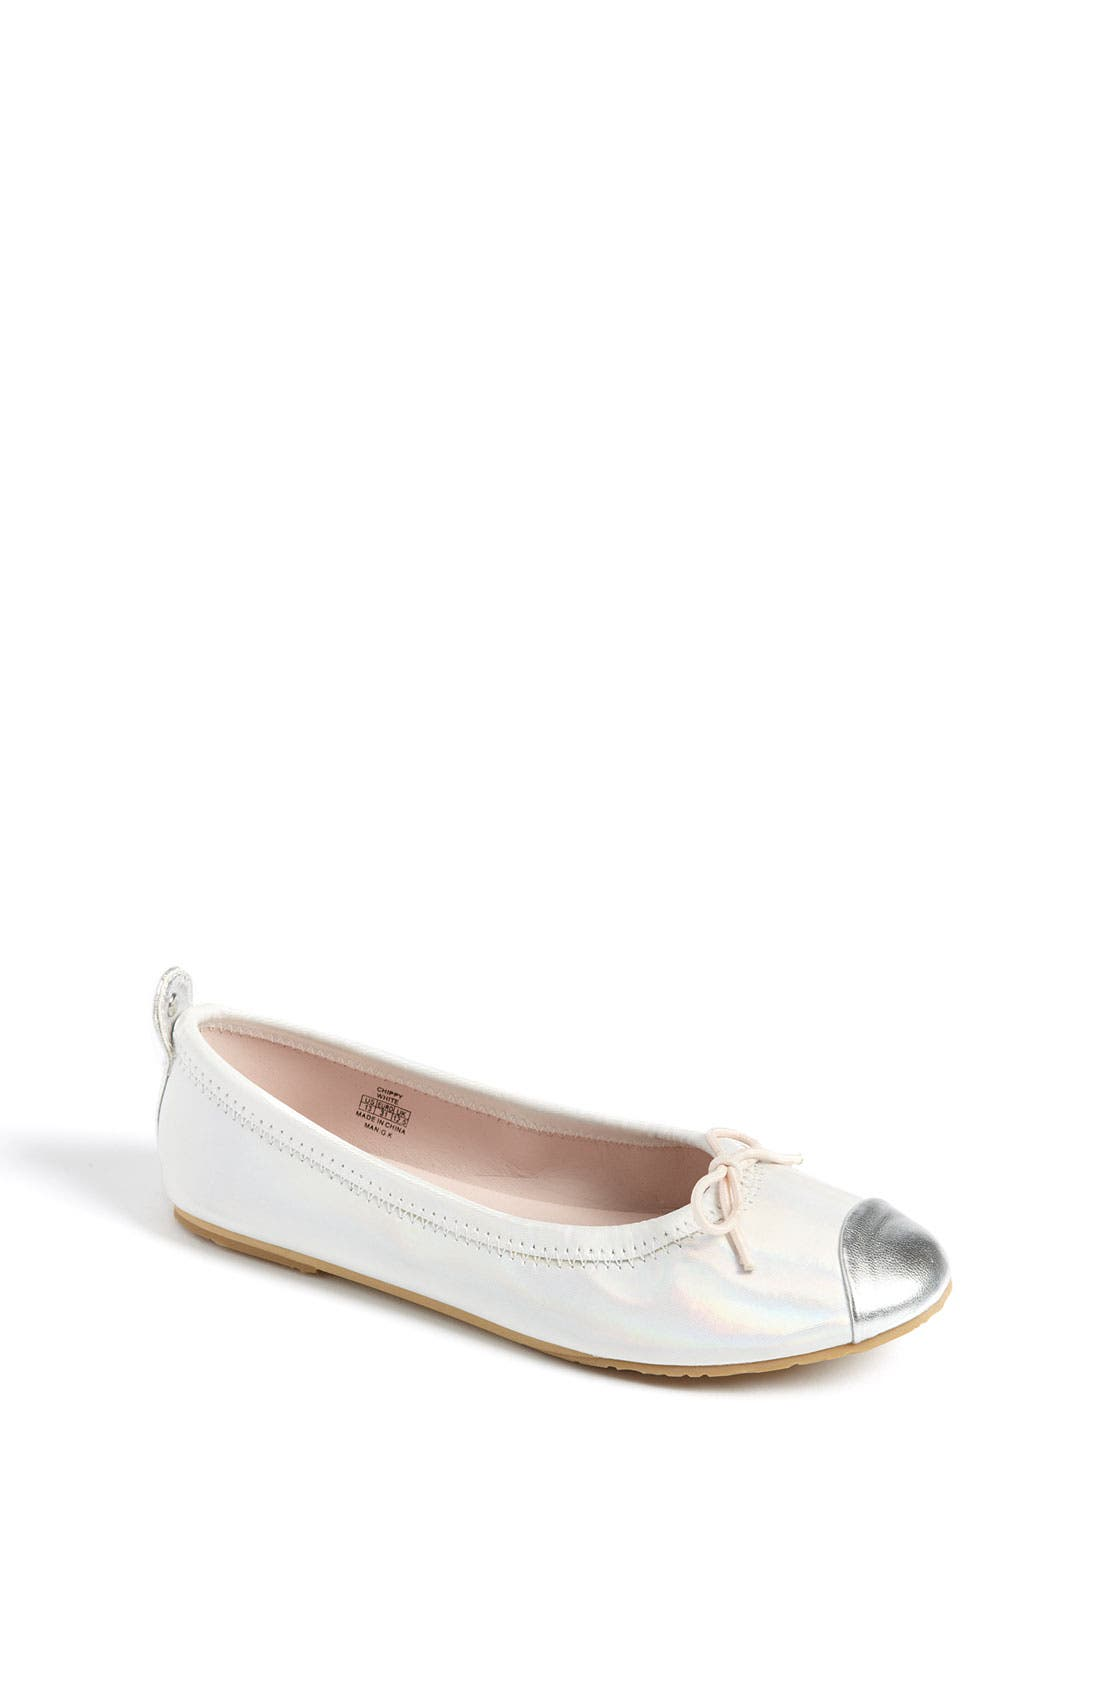 Alternate Image 1 Selected - Stuart Weitzman 'Chippy' Flat (Toddler, Little Kid & Big Kid)